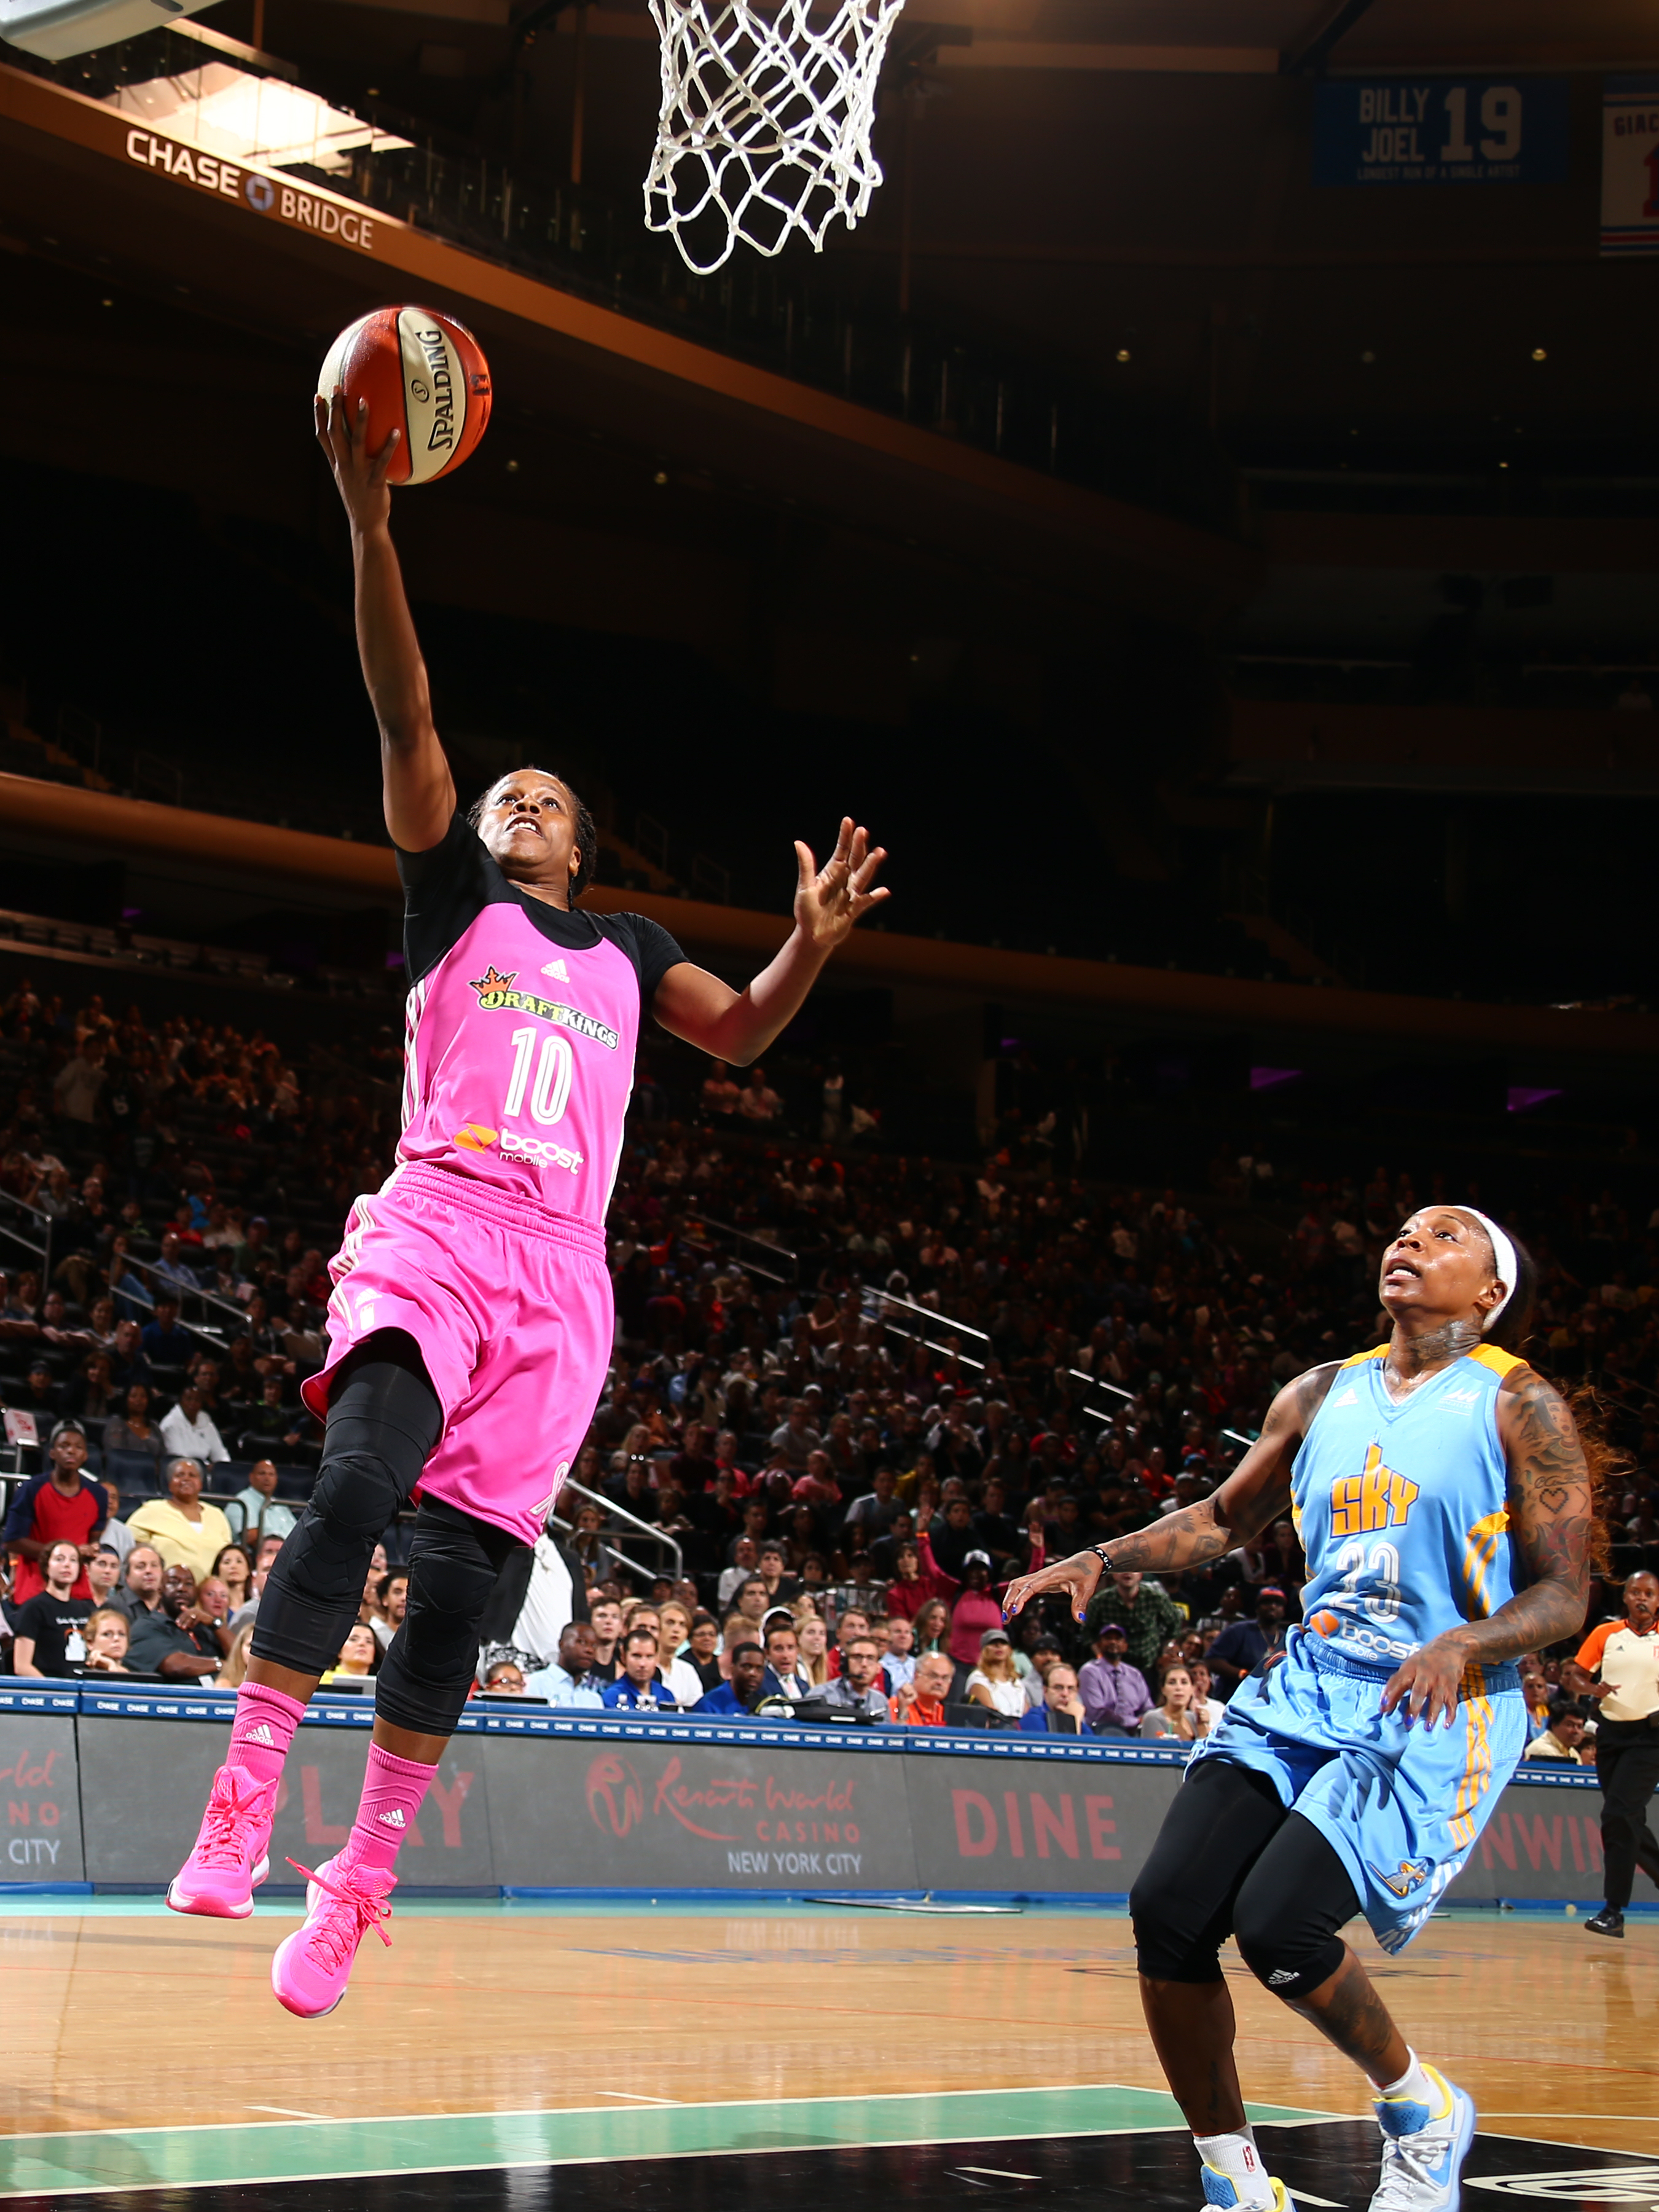 NEW YORK, NY - AUGUST 11: Epiphanny Prince #10 of the New York Liberty goes for the lay up against Cappie Pondexter #23 of the Chicago Sky on August 11, 2015 at Madison Square Garden, New York City , New York.  (Photo by Nathaniel S. Butler/NBAE via Getty